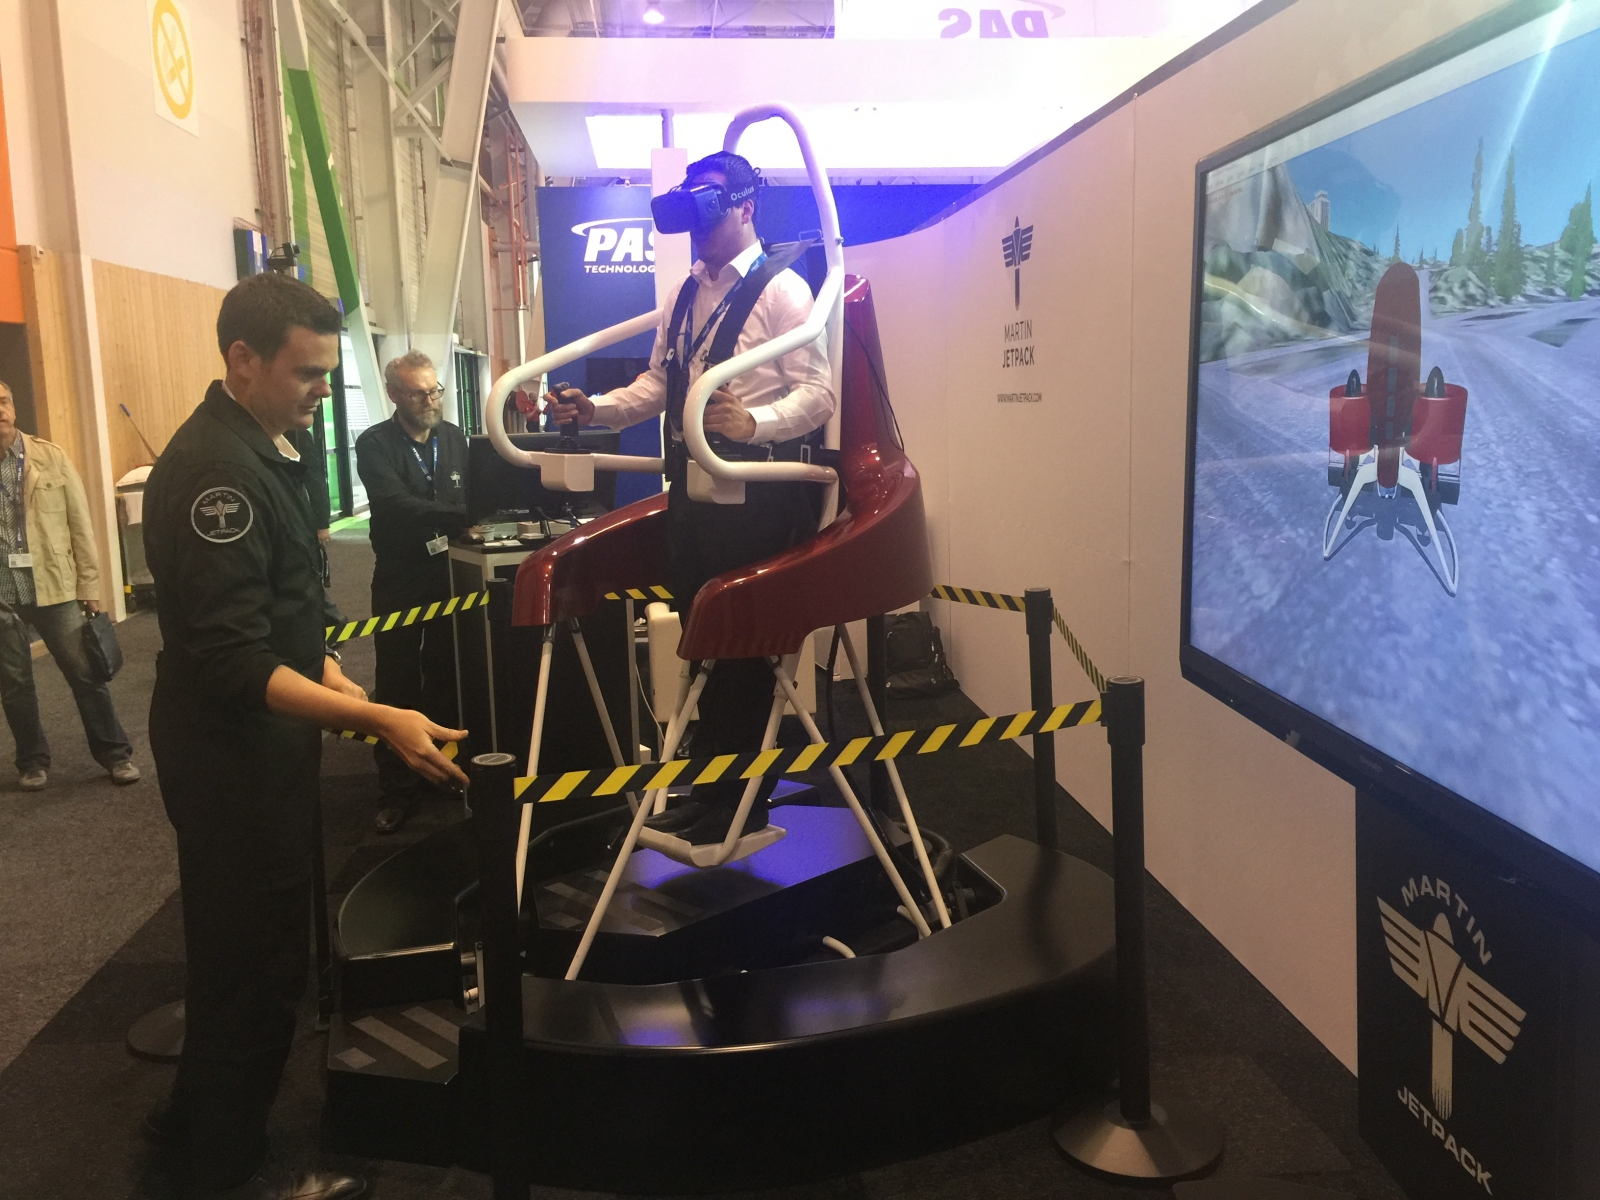 Martin Jetpack VR trial at Paris Airshow